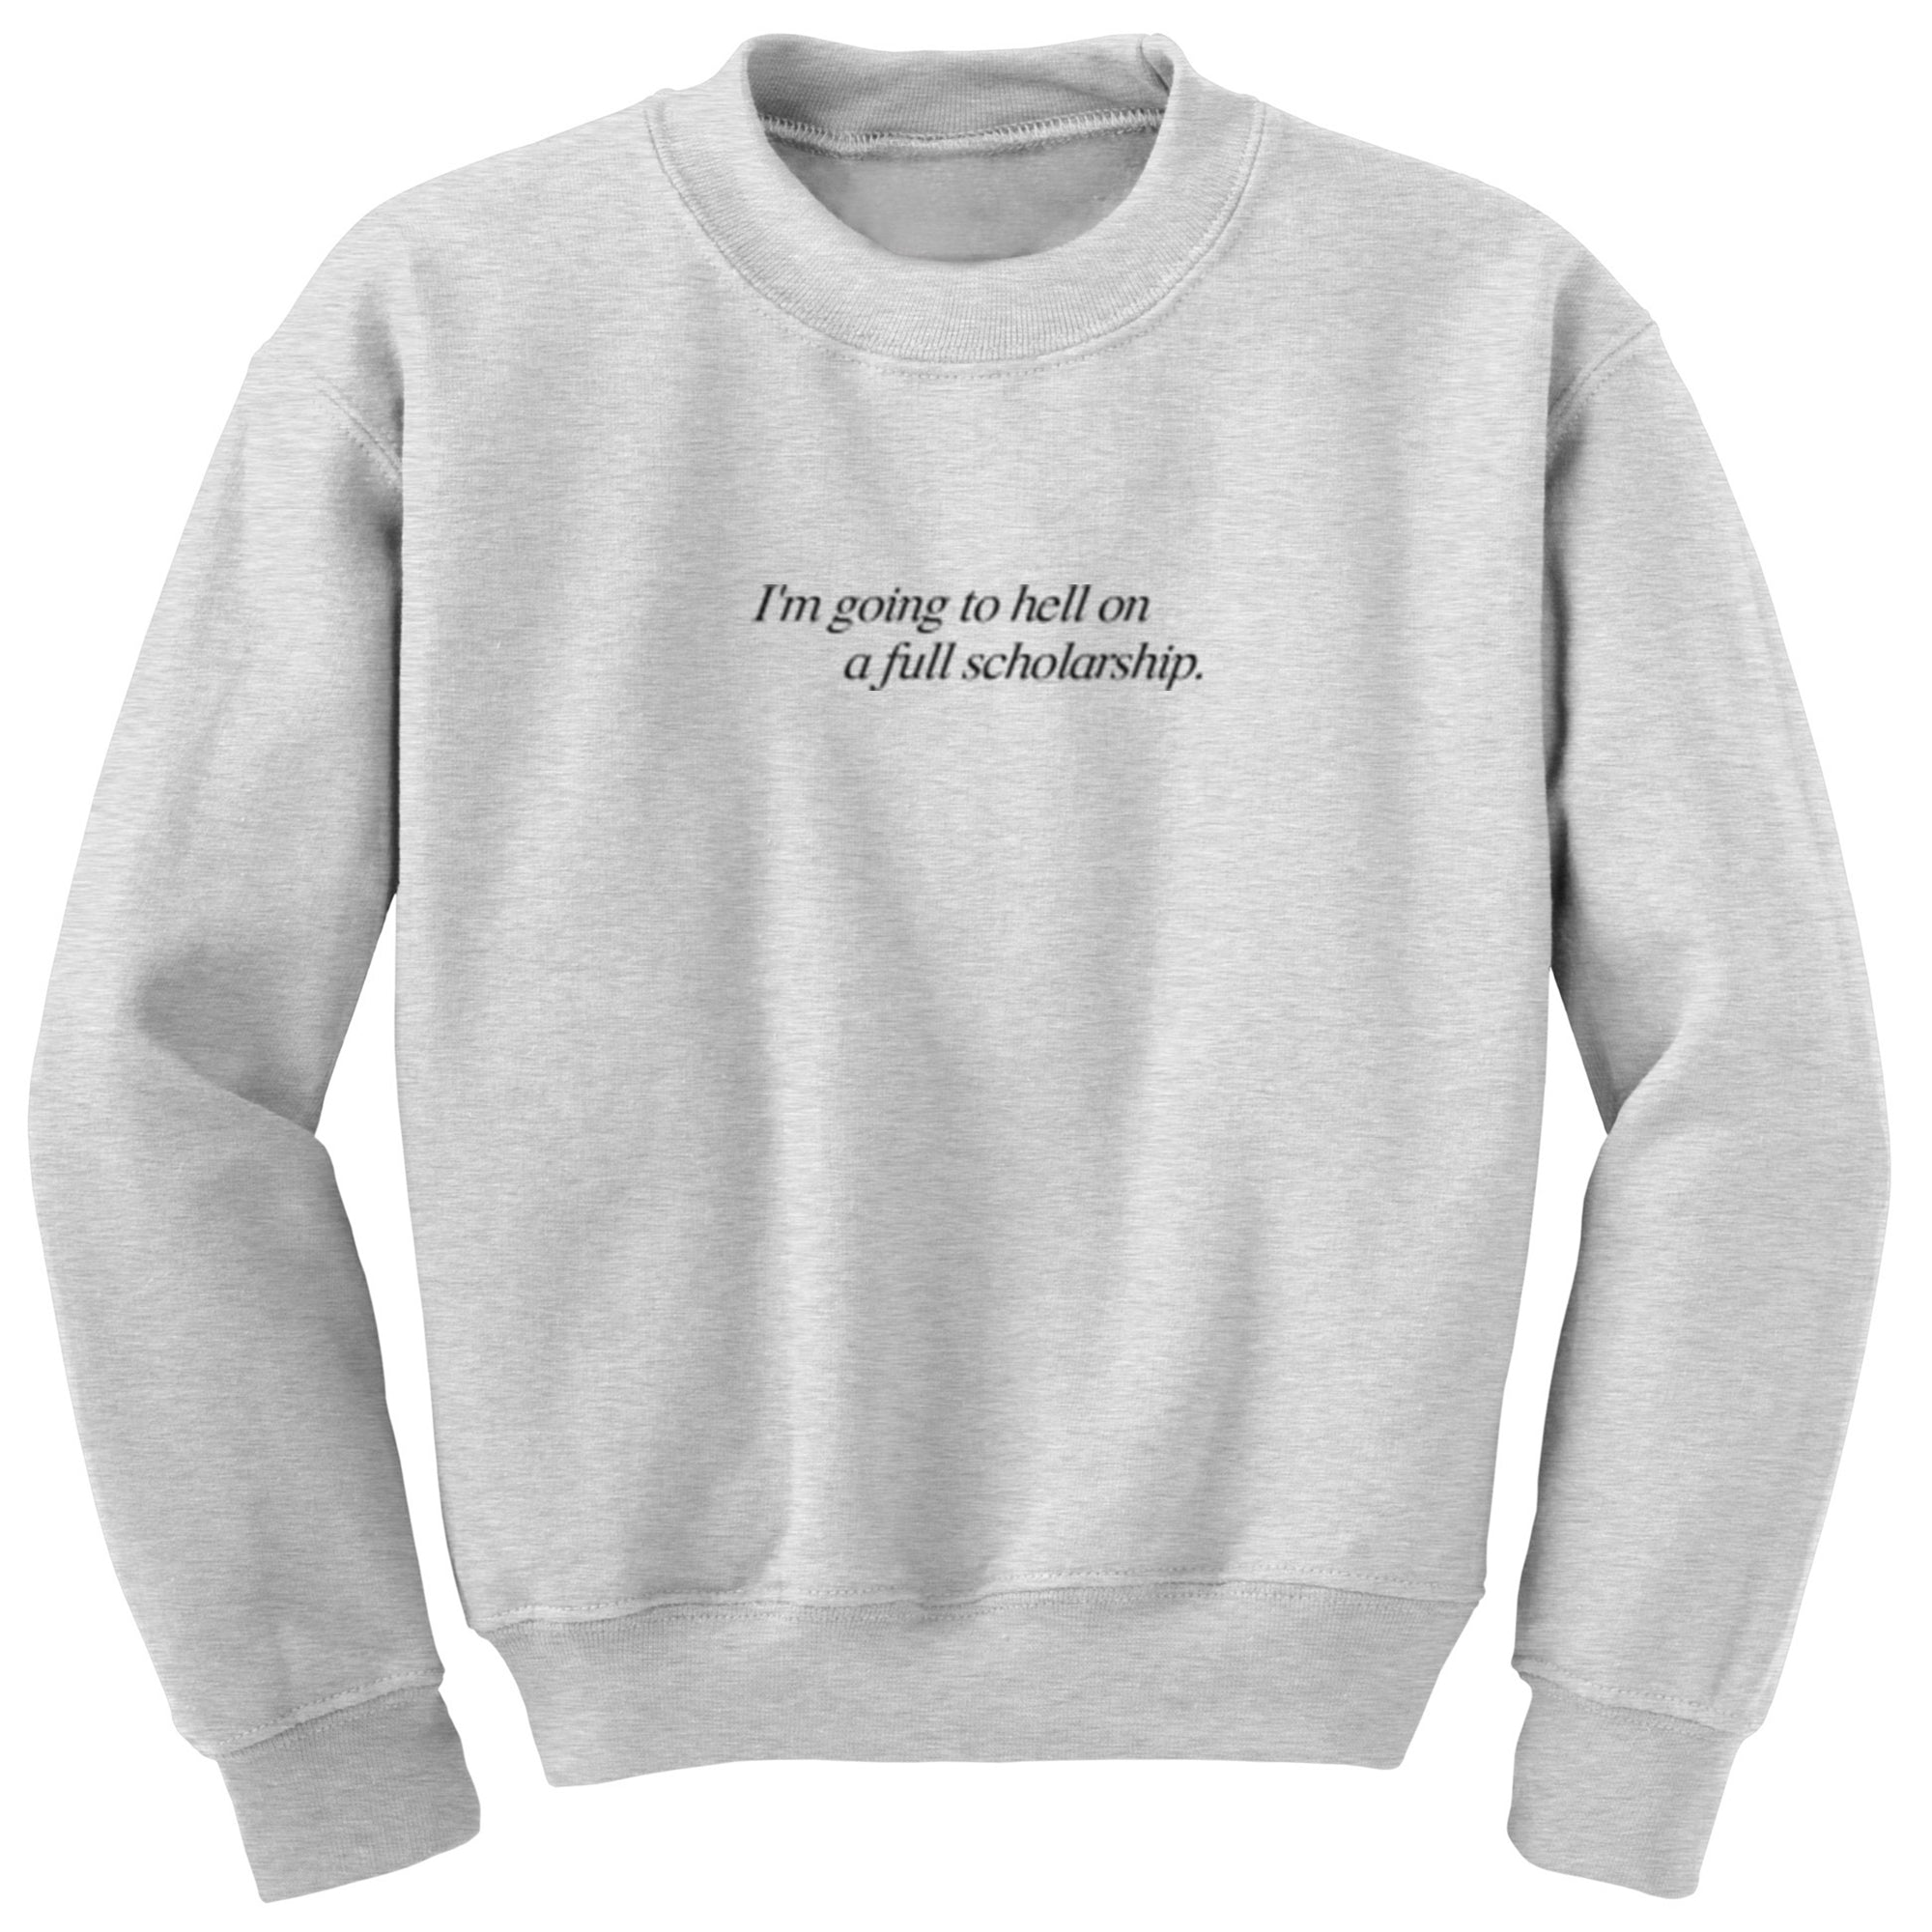 I'm Going To Hell On A Full Scholarship Unisex Jumper S1043 - Illustrated Identity Ltd.